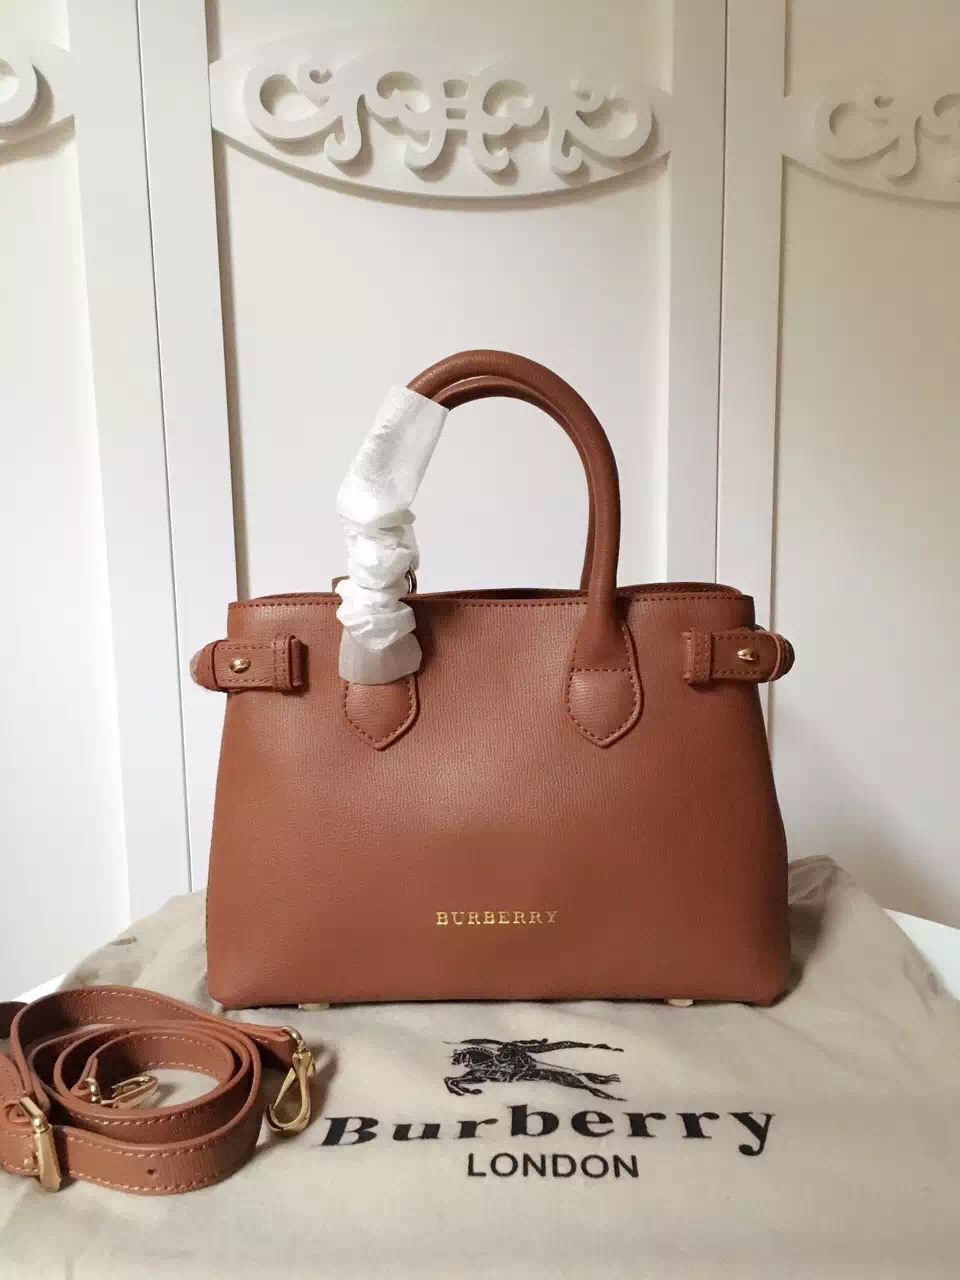 2017 New Burberry Banner 7461 Women Leather Coffee Handbags